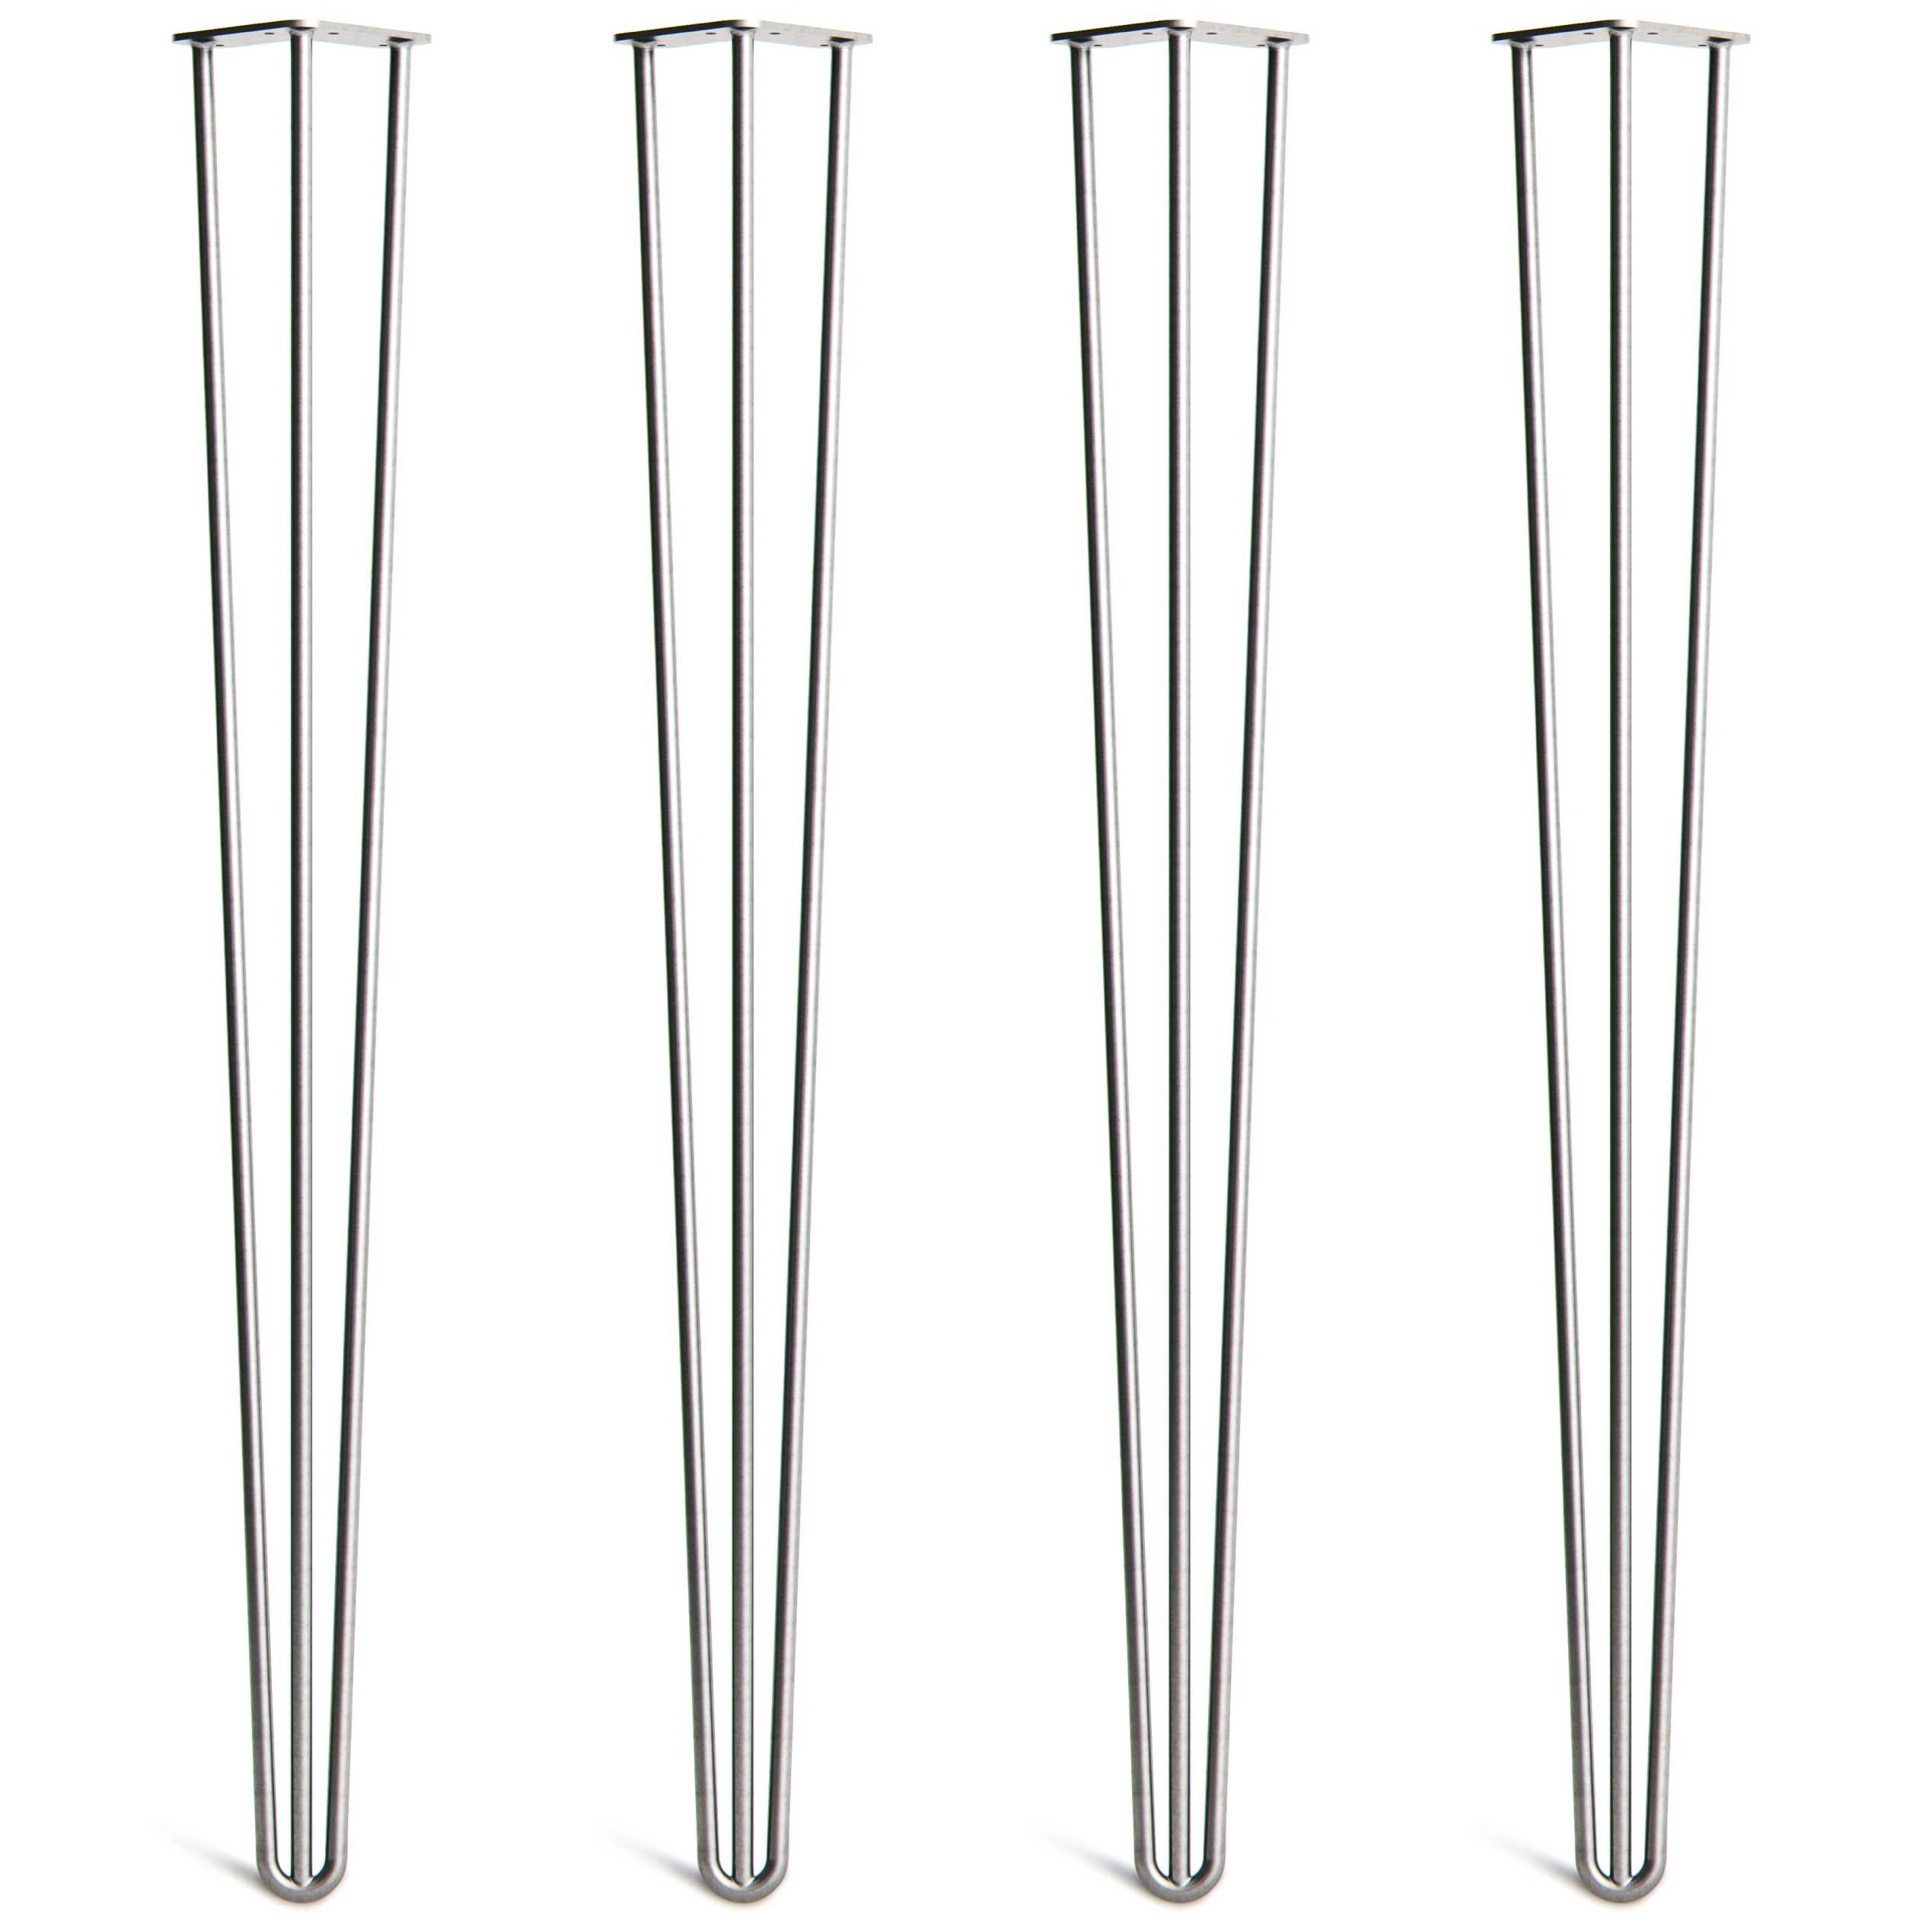 4 x Heavy Duty Hairpin Table Legs – Superior Double Weld Steel Construction With Free Screws, Build Guide & Protector Feet, Worth $10! – Mid-Century Modern Style – 16'' To 40'', All Finishes (1/2 inch) by The Hairpin Leg Co. (Image #1)